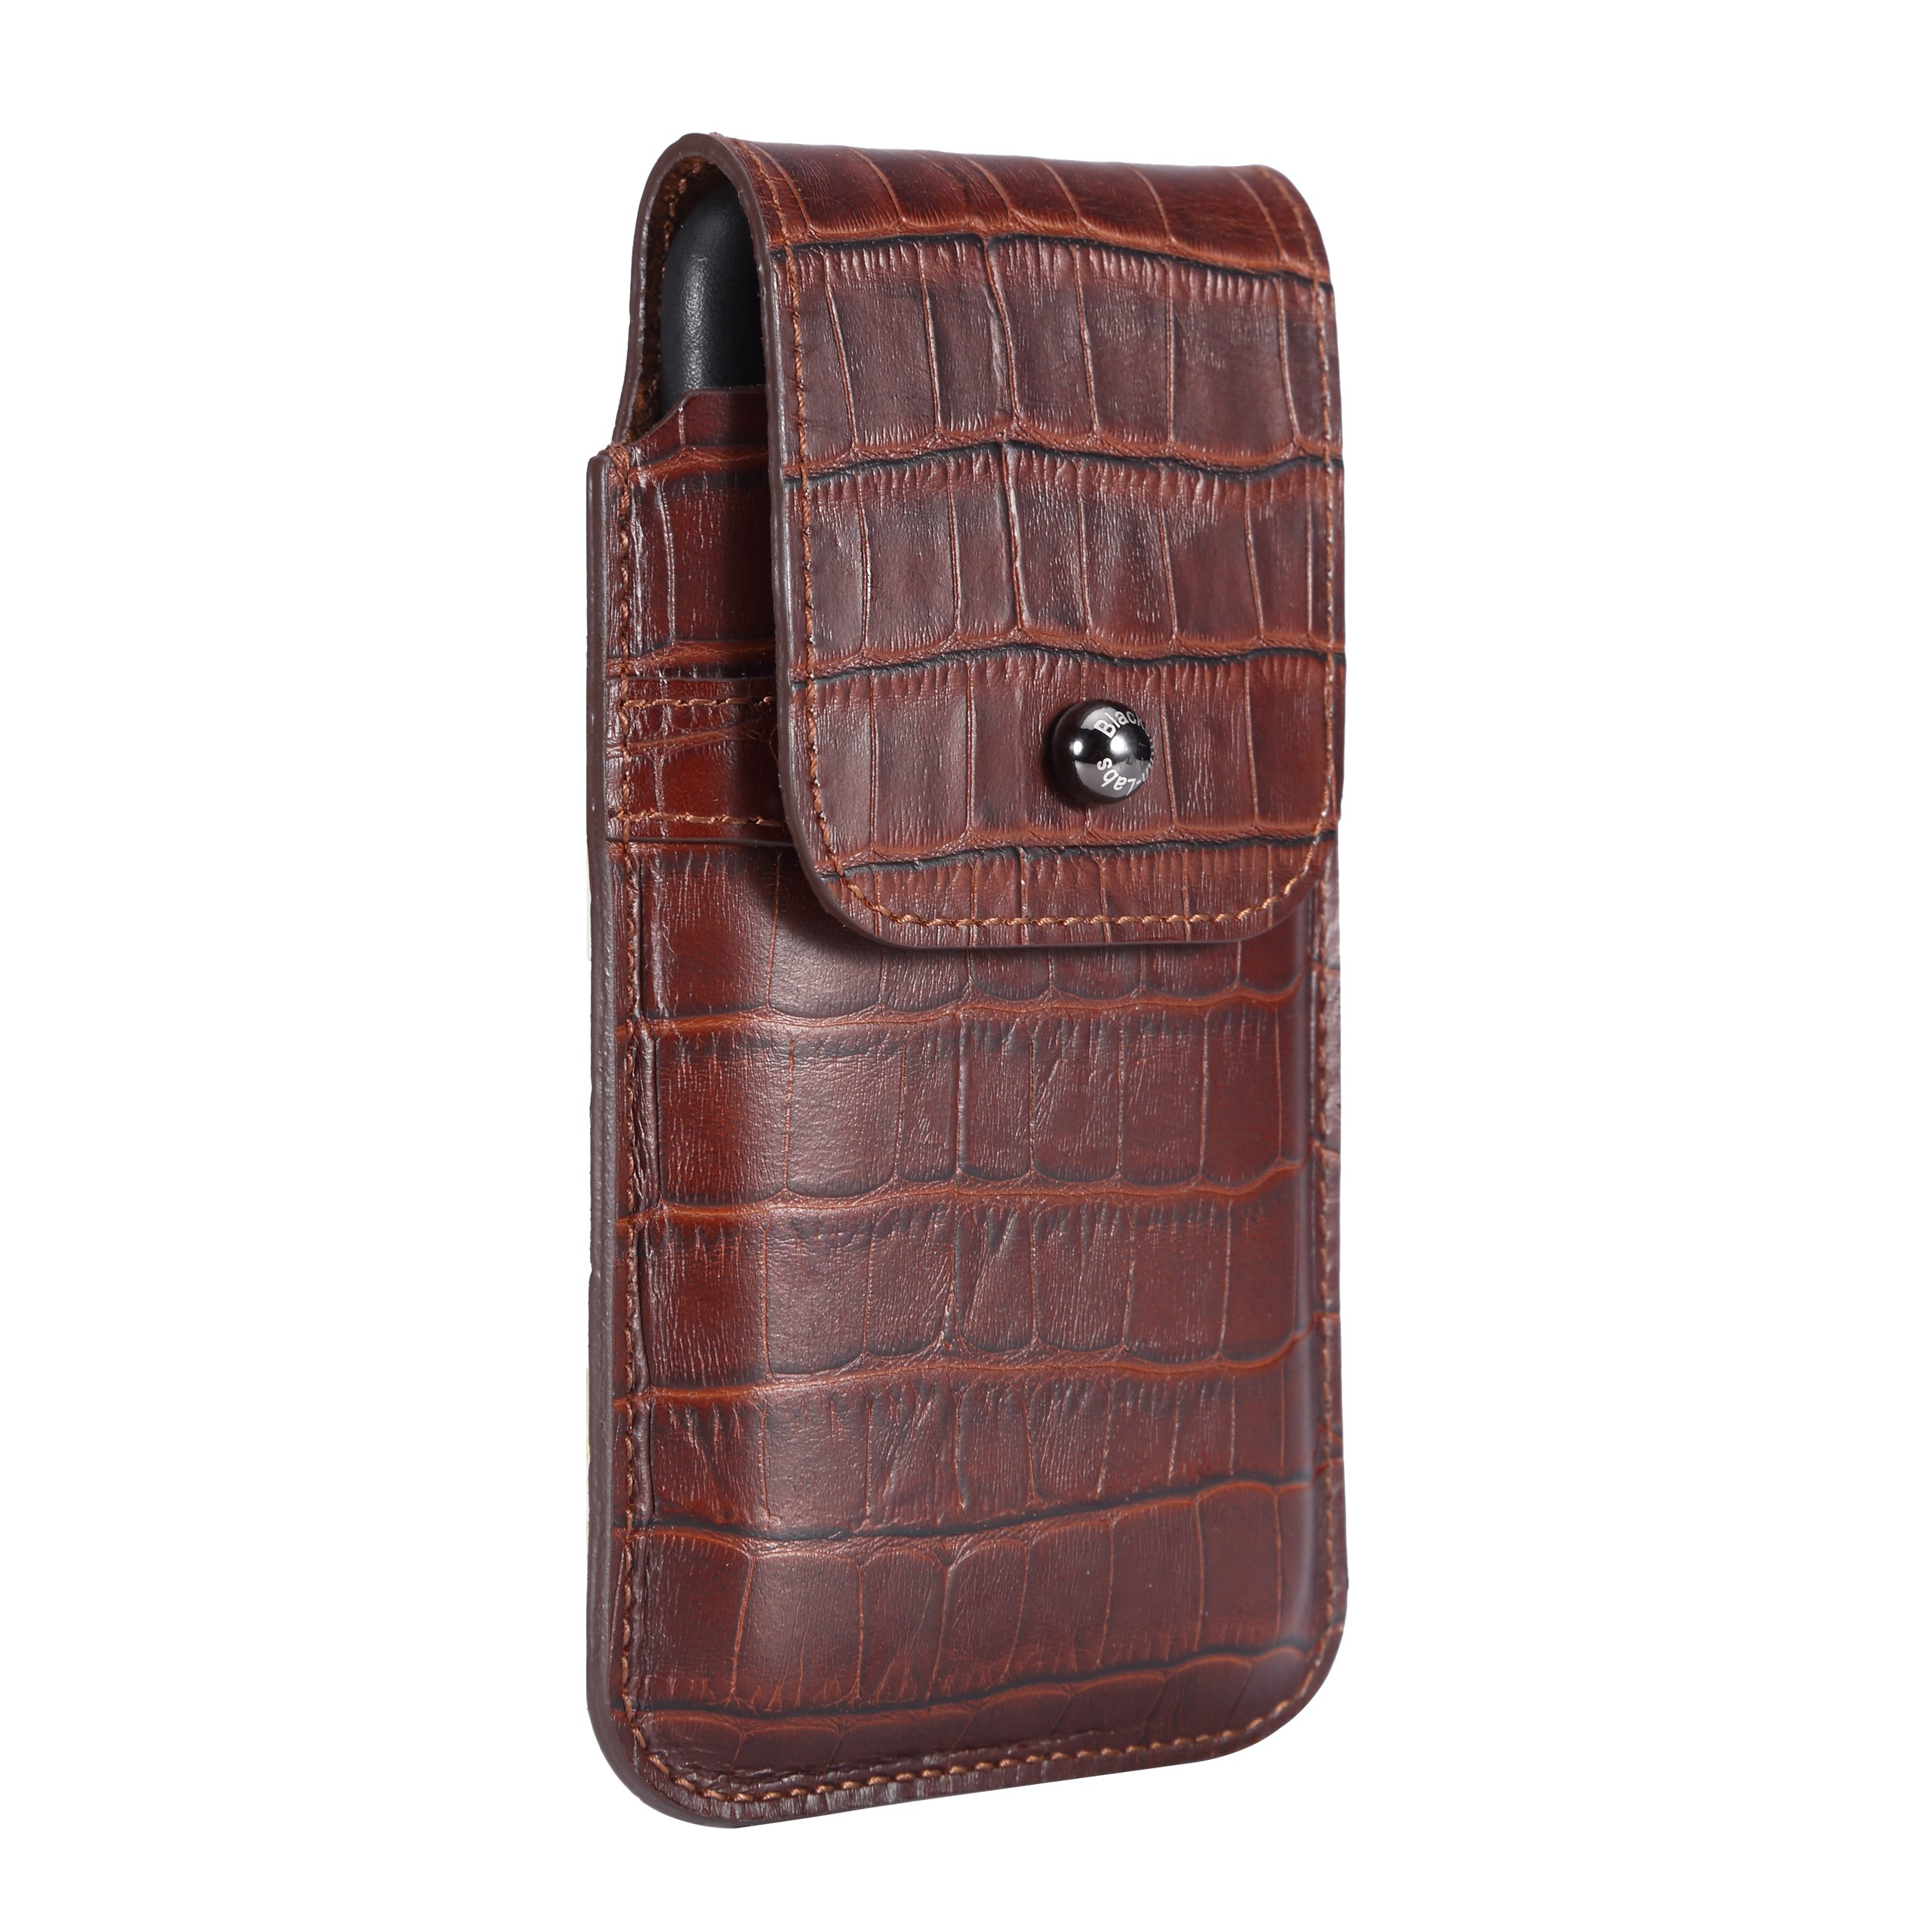 Blacksmith-Labs Barrett Mezzano 2017 Premium Genuine Leather Swivel Belt Clip Holster for Apple iPhone 6/6s/7 for use with Apple Leather Case - Rustic Brown Croc Embossed Cowhide/Gunmetal Belt Clip